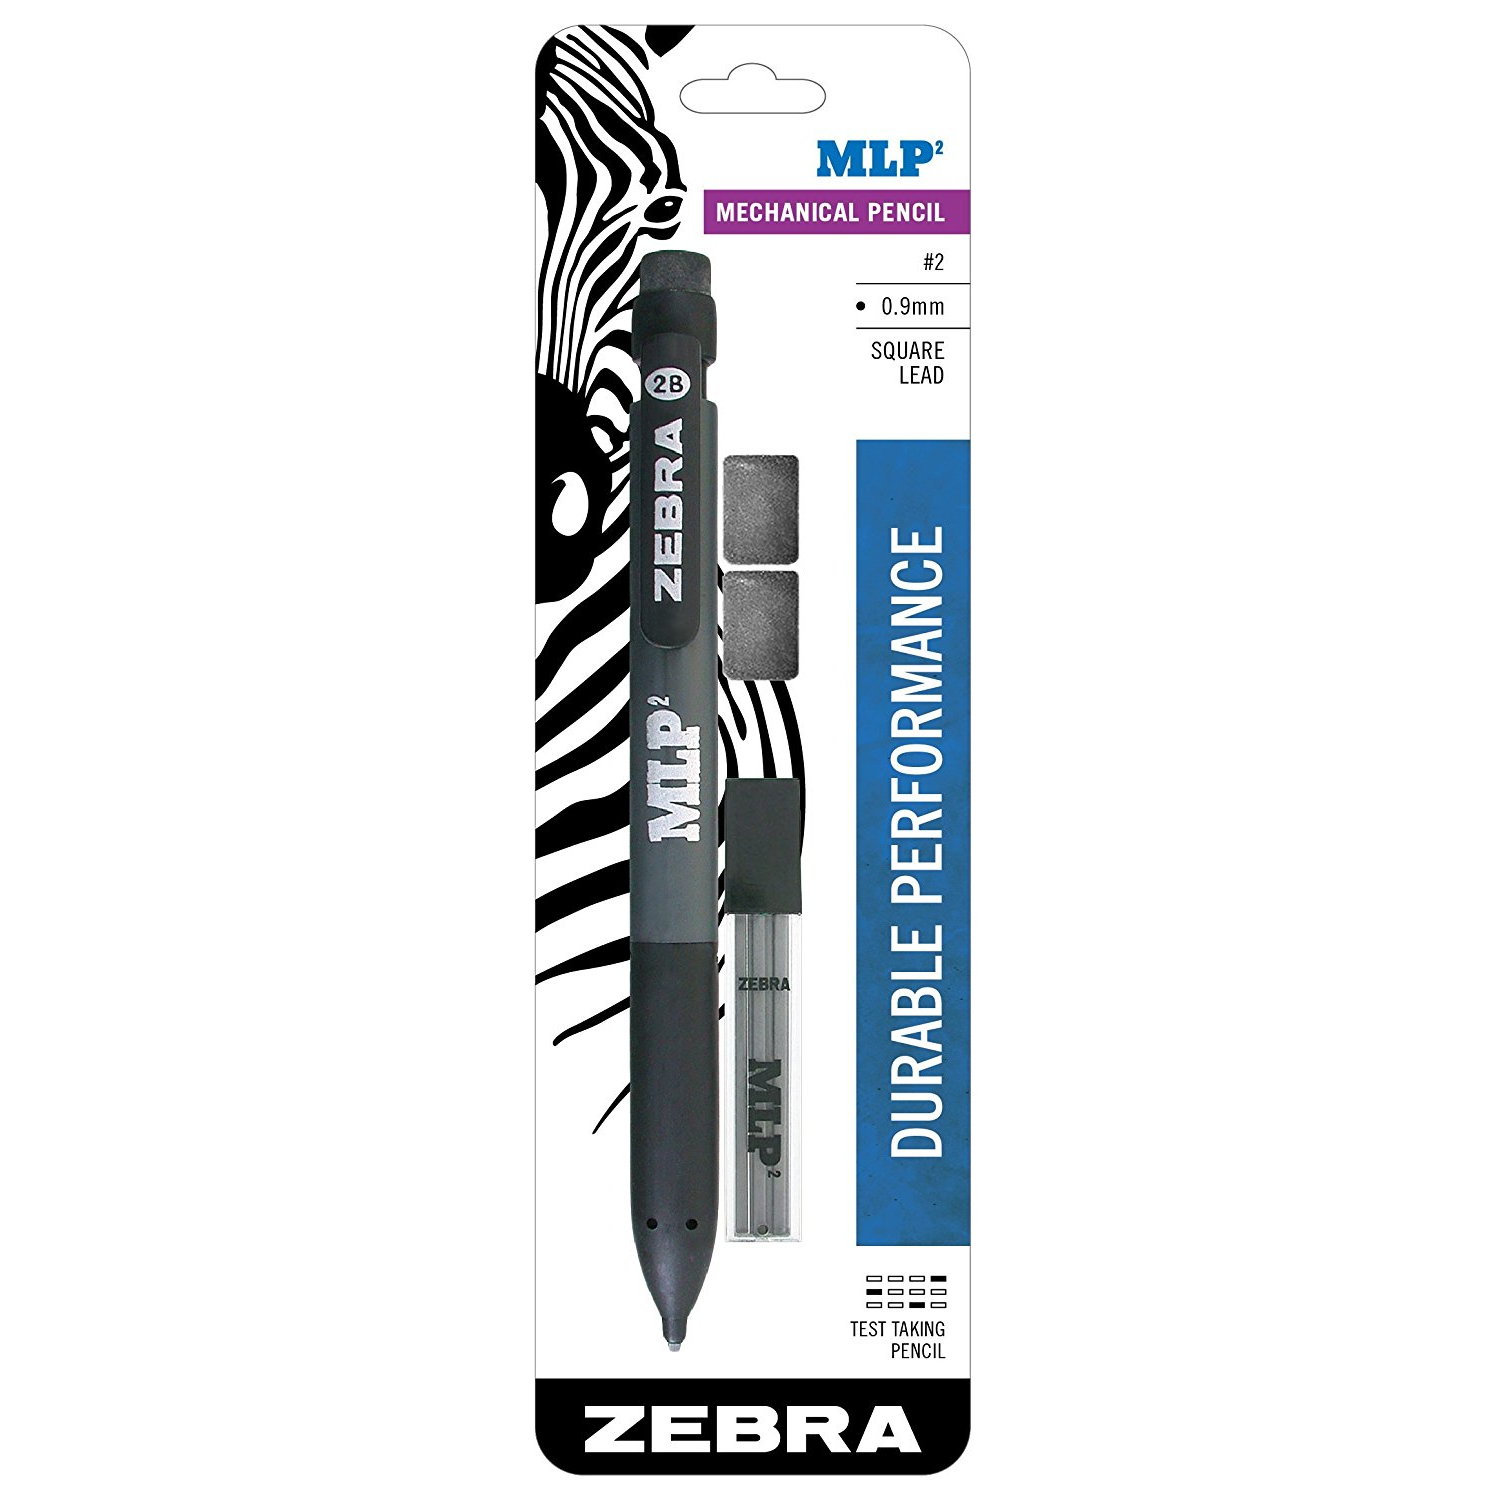 Image For Zebra MLP2 Square Lead Mechanical Pencil 0.9mm